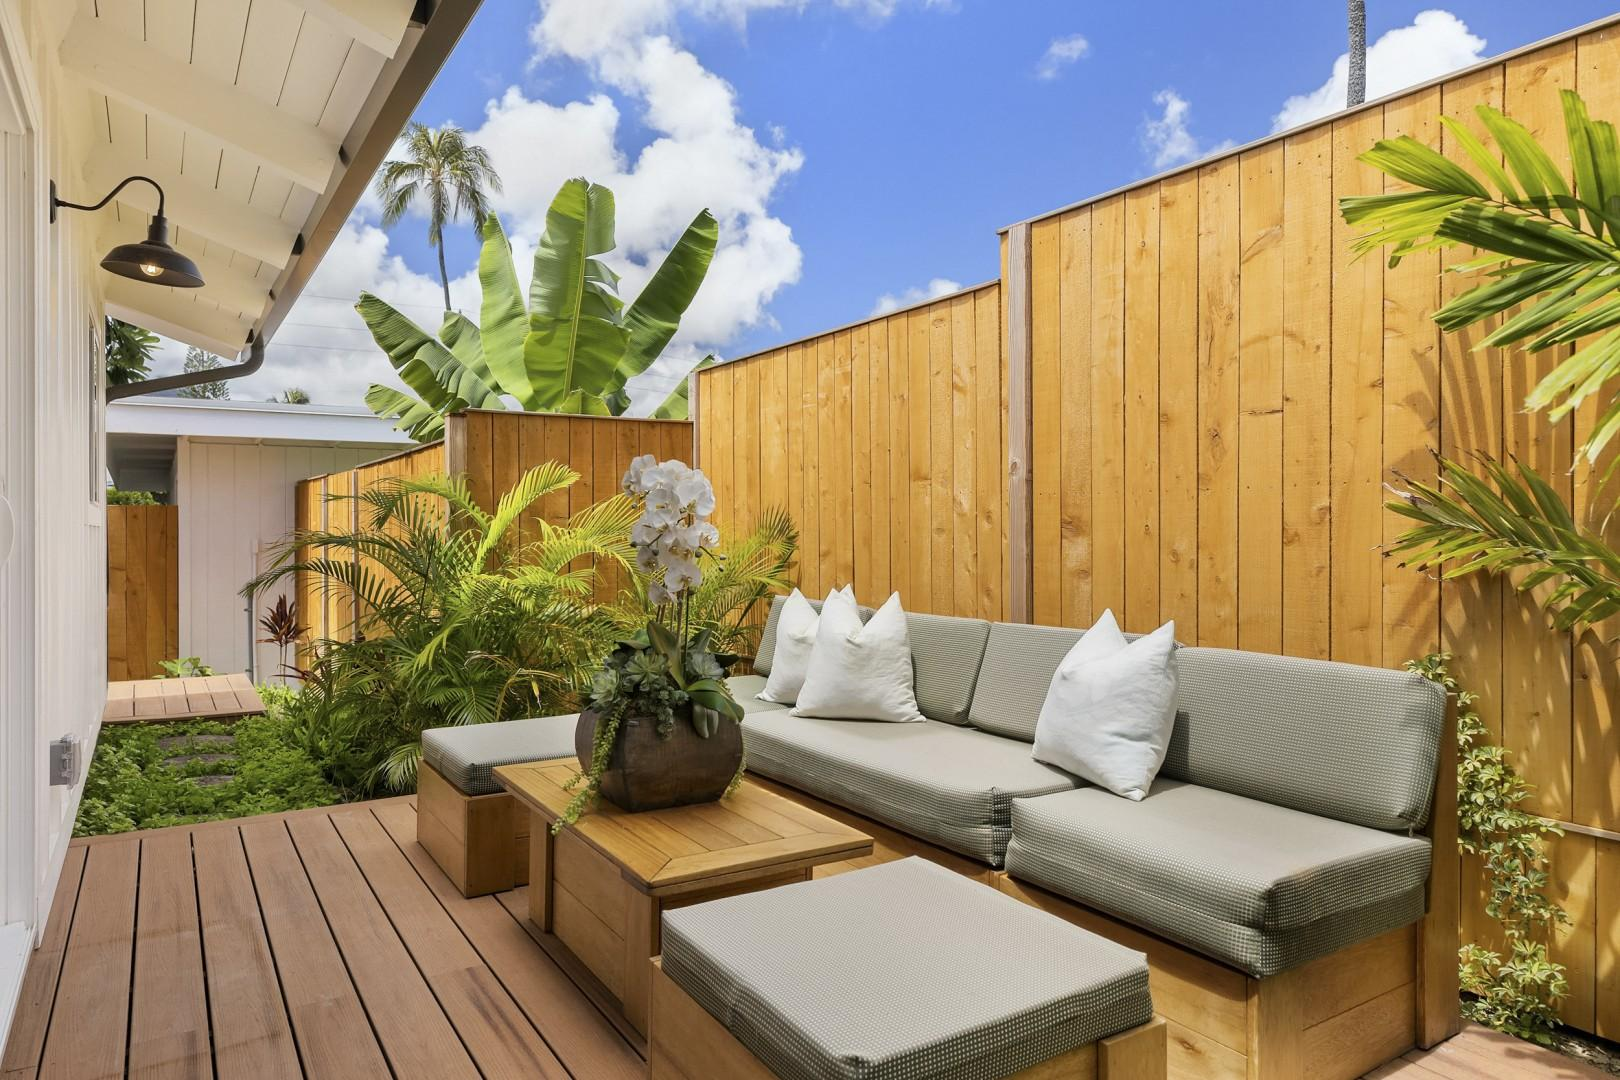 Private outdoor lanai with outdoor seating